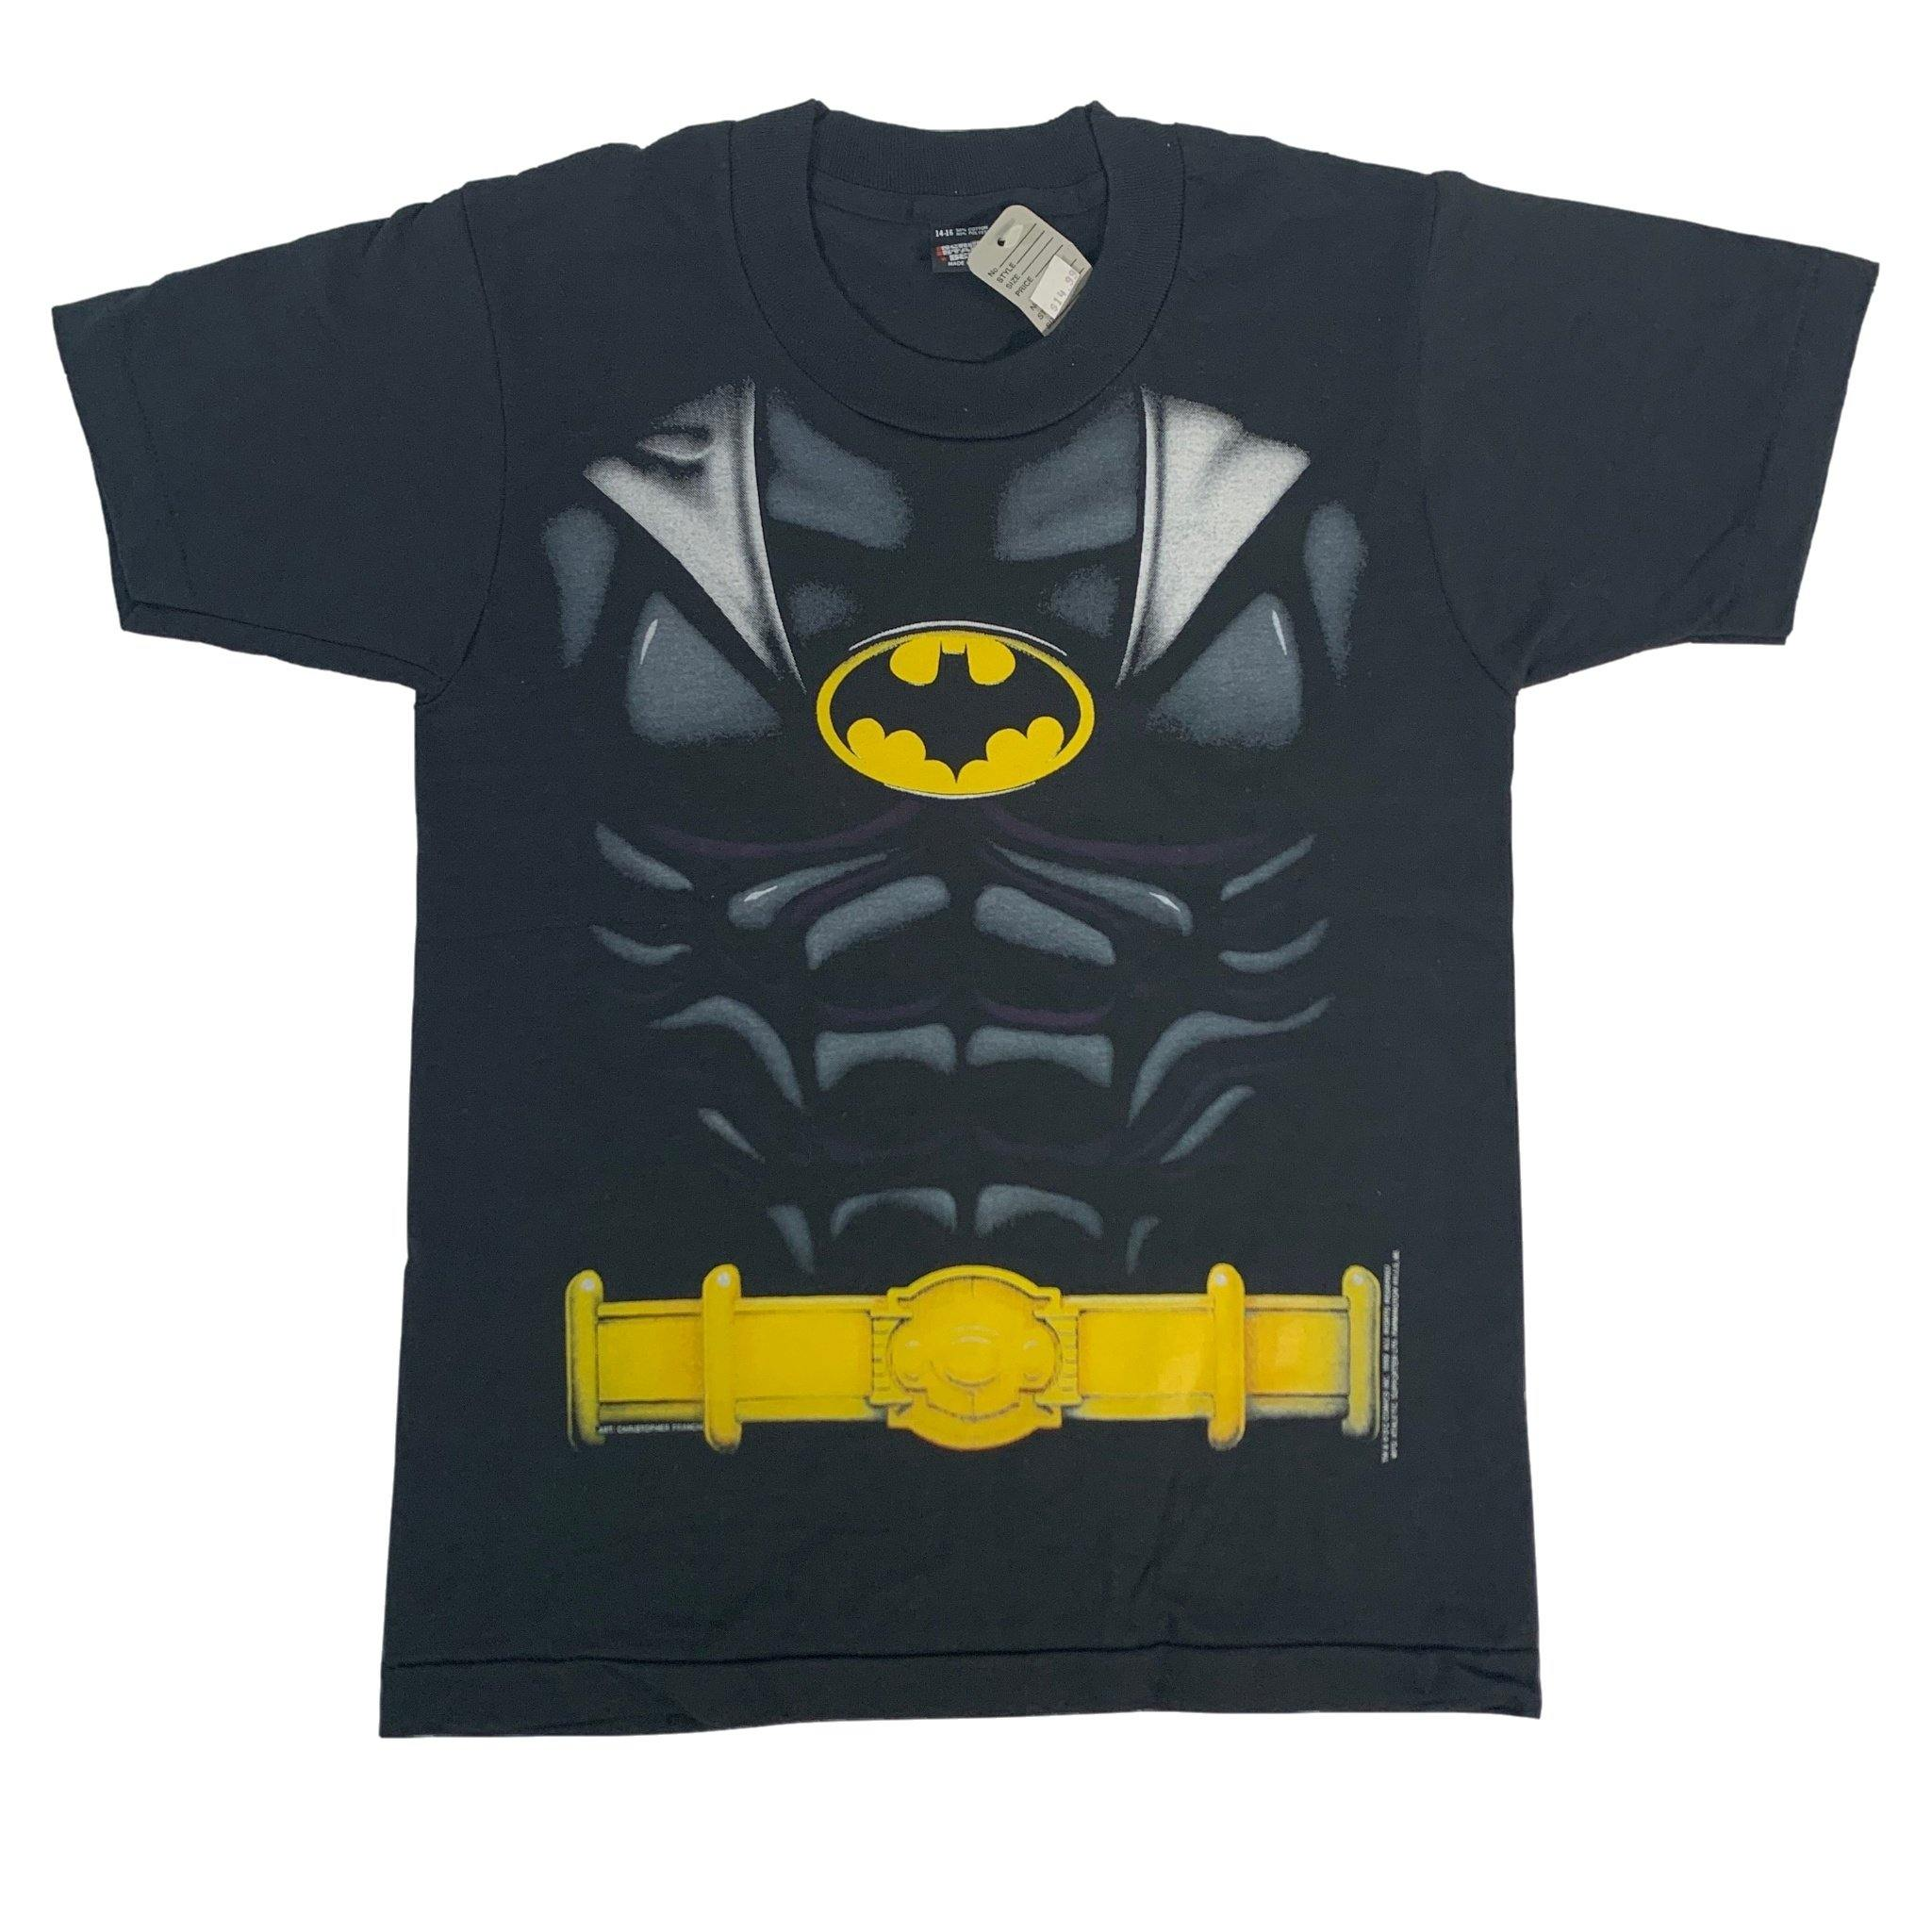 "Vintage Batman ""1989"" Kids T-Shirt"